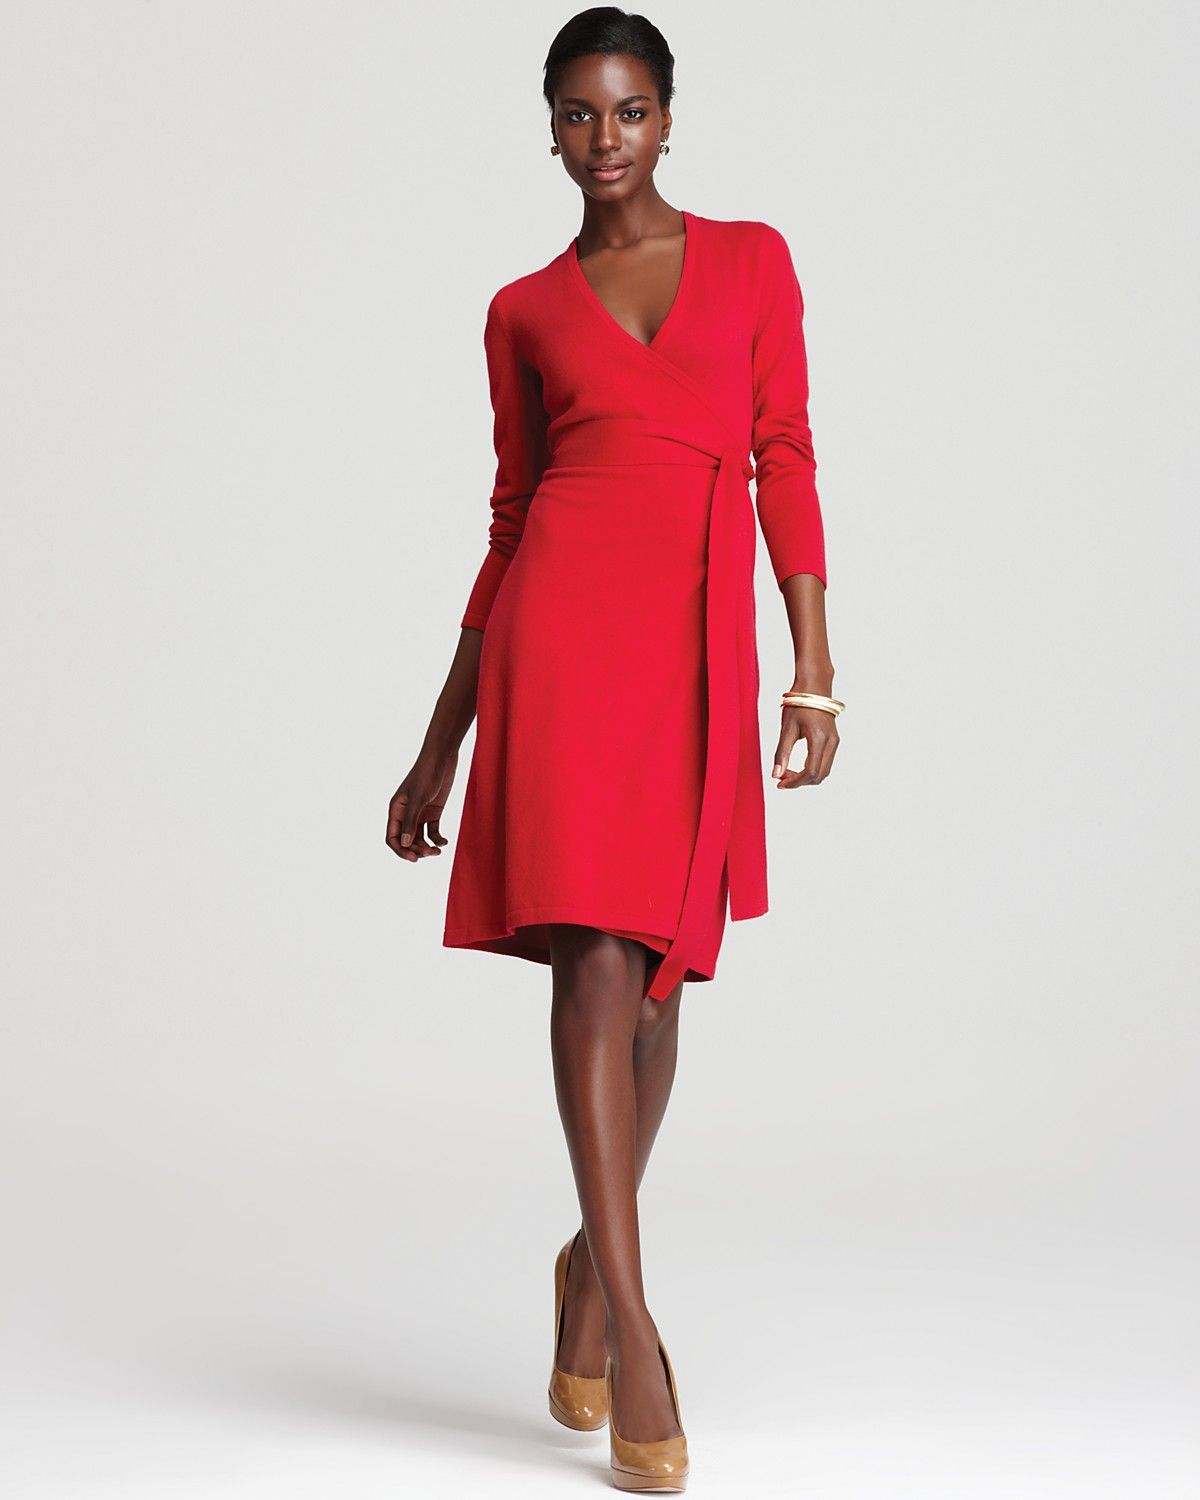 78  images about THE WRAP DRESS on Pinterest  Coats Pop of color ...